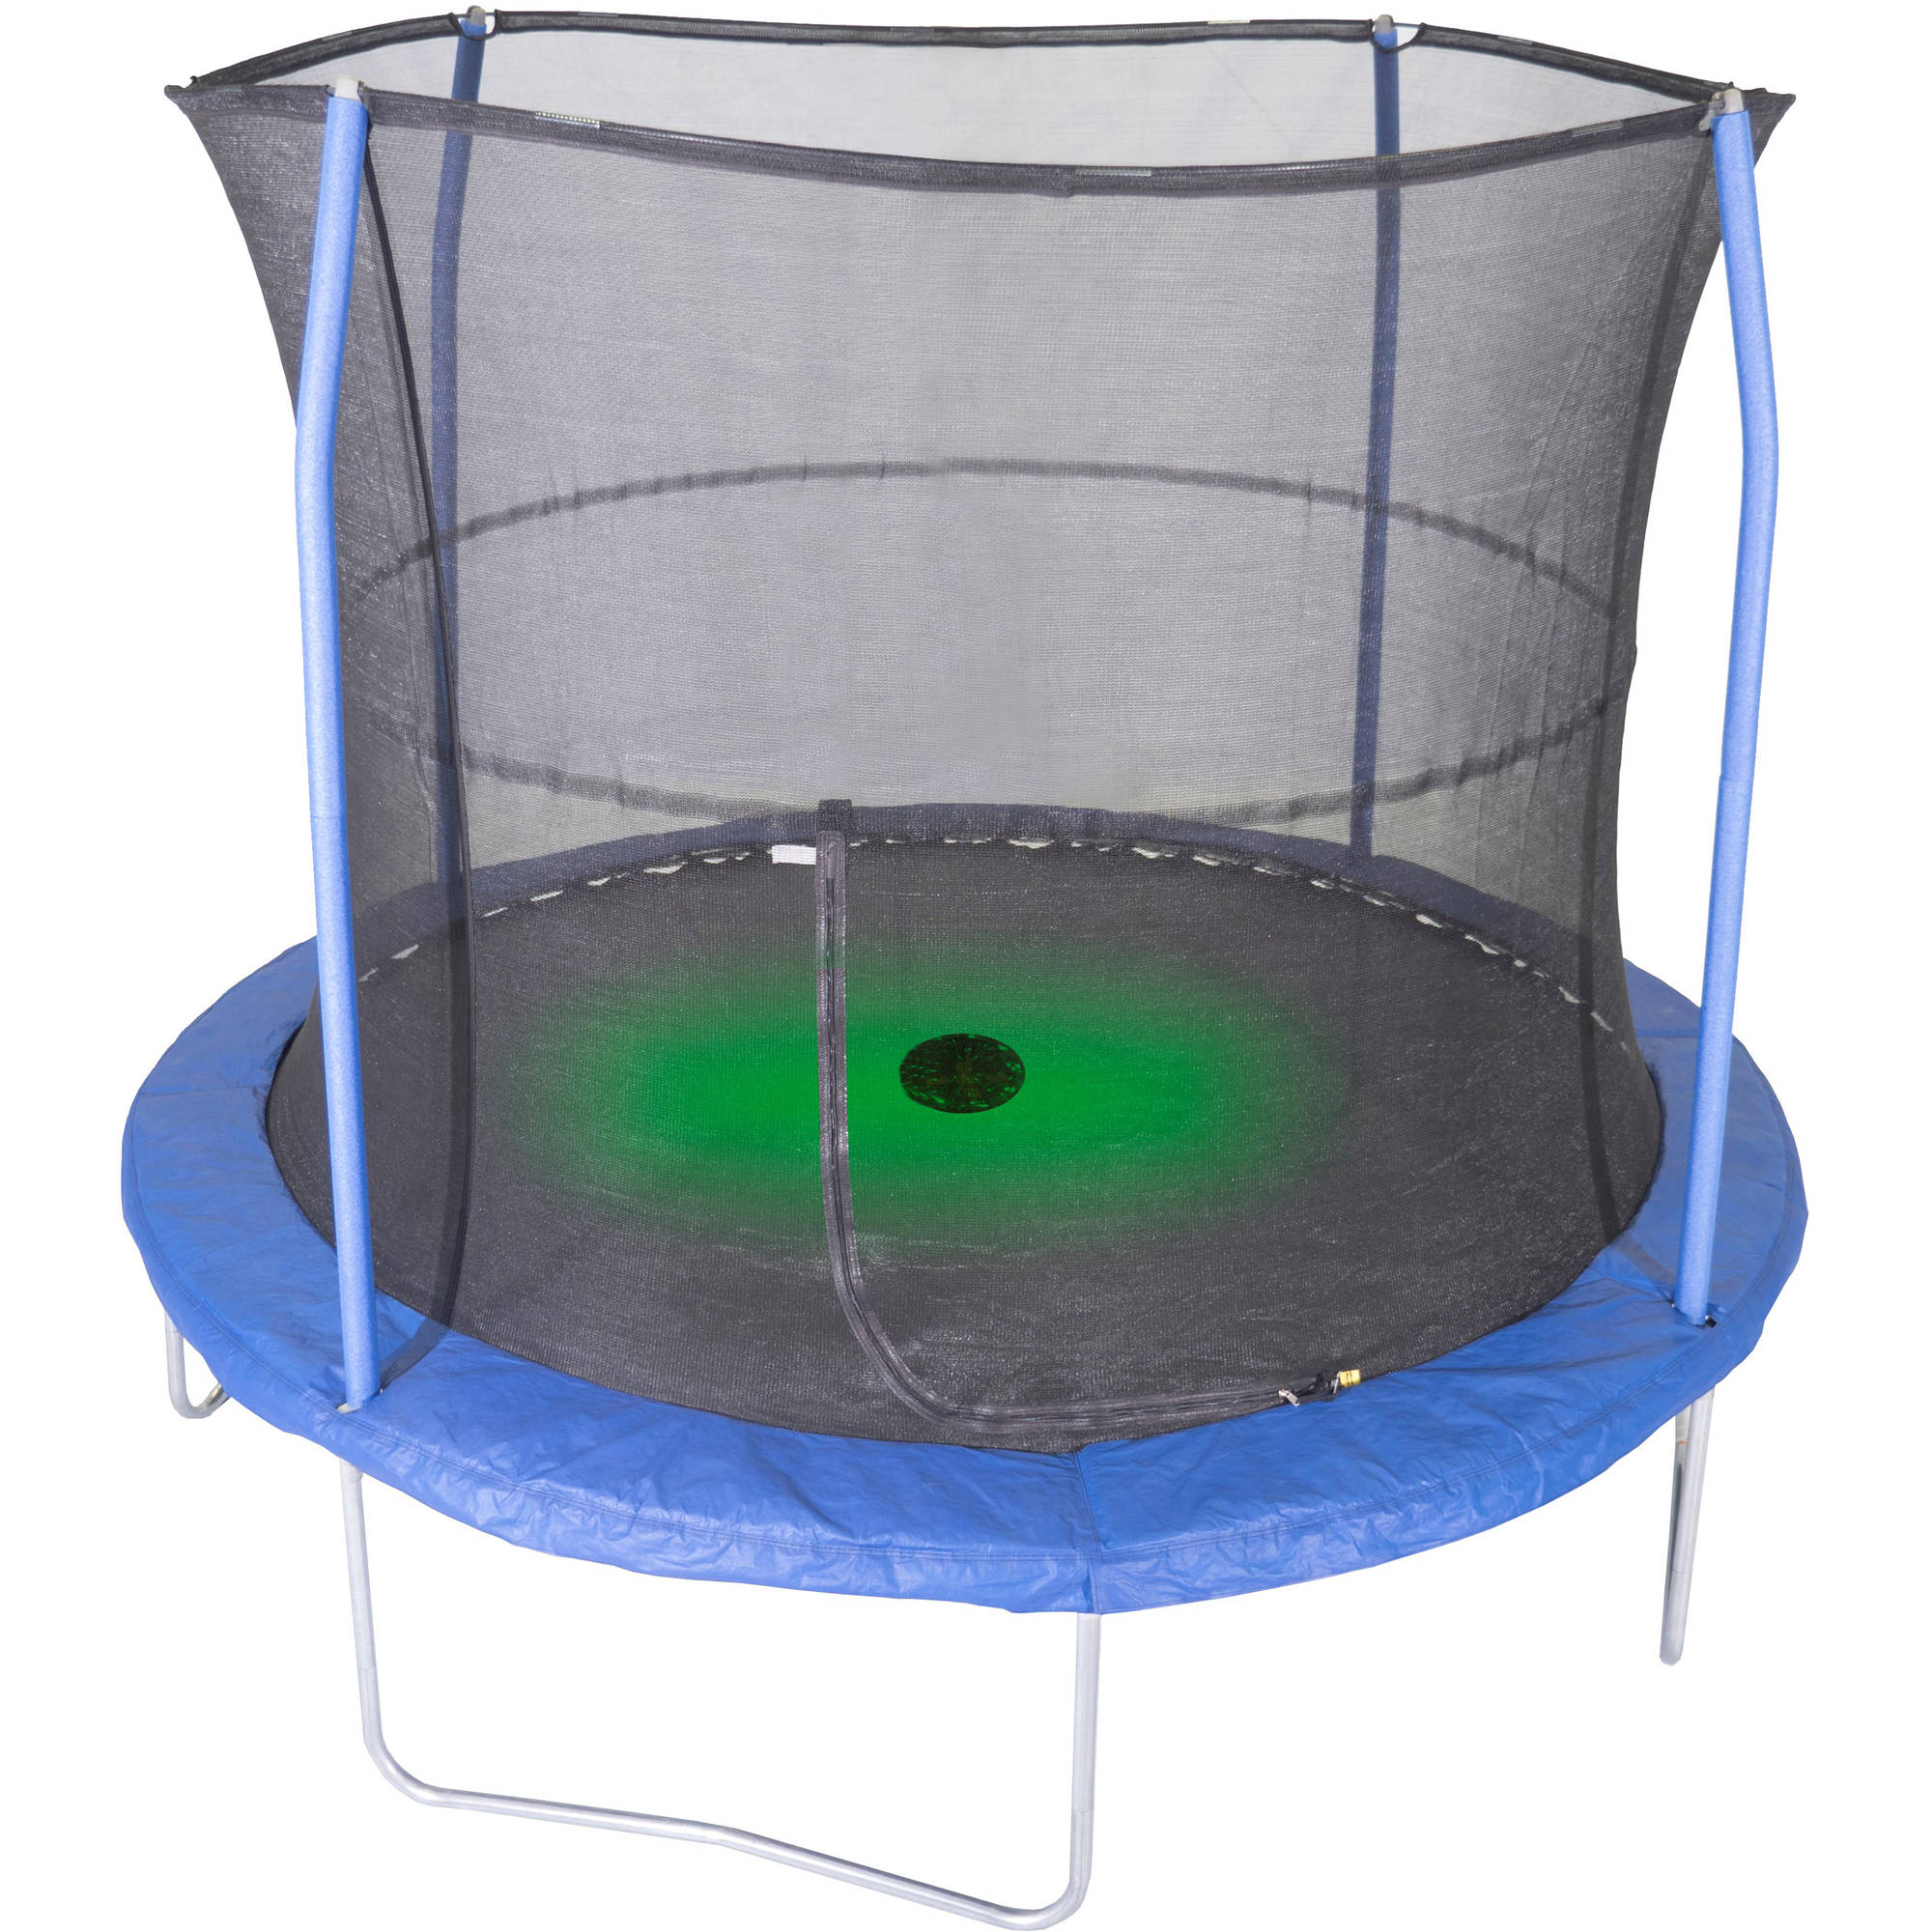 Jumpking Trampoline with Sound and Light, 10', 4 Legs